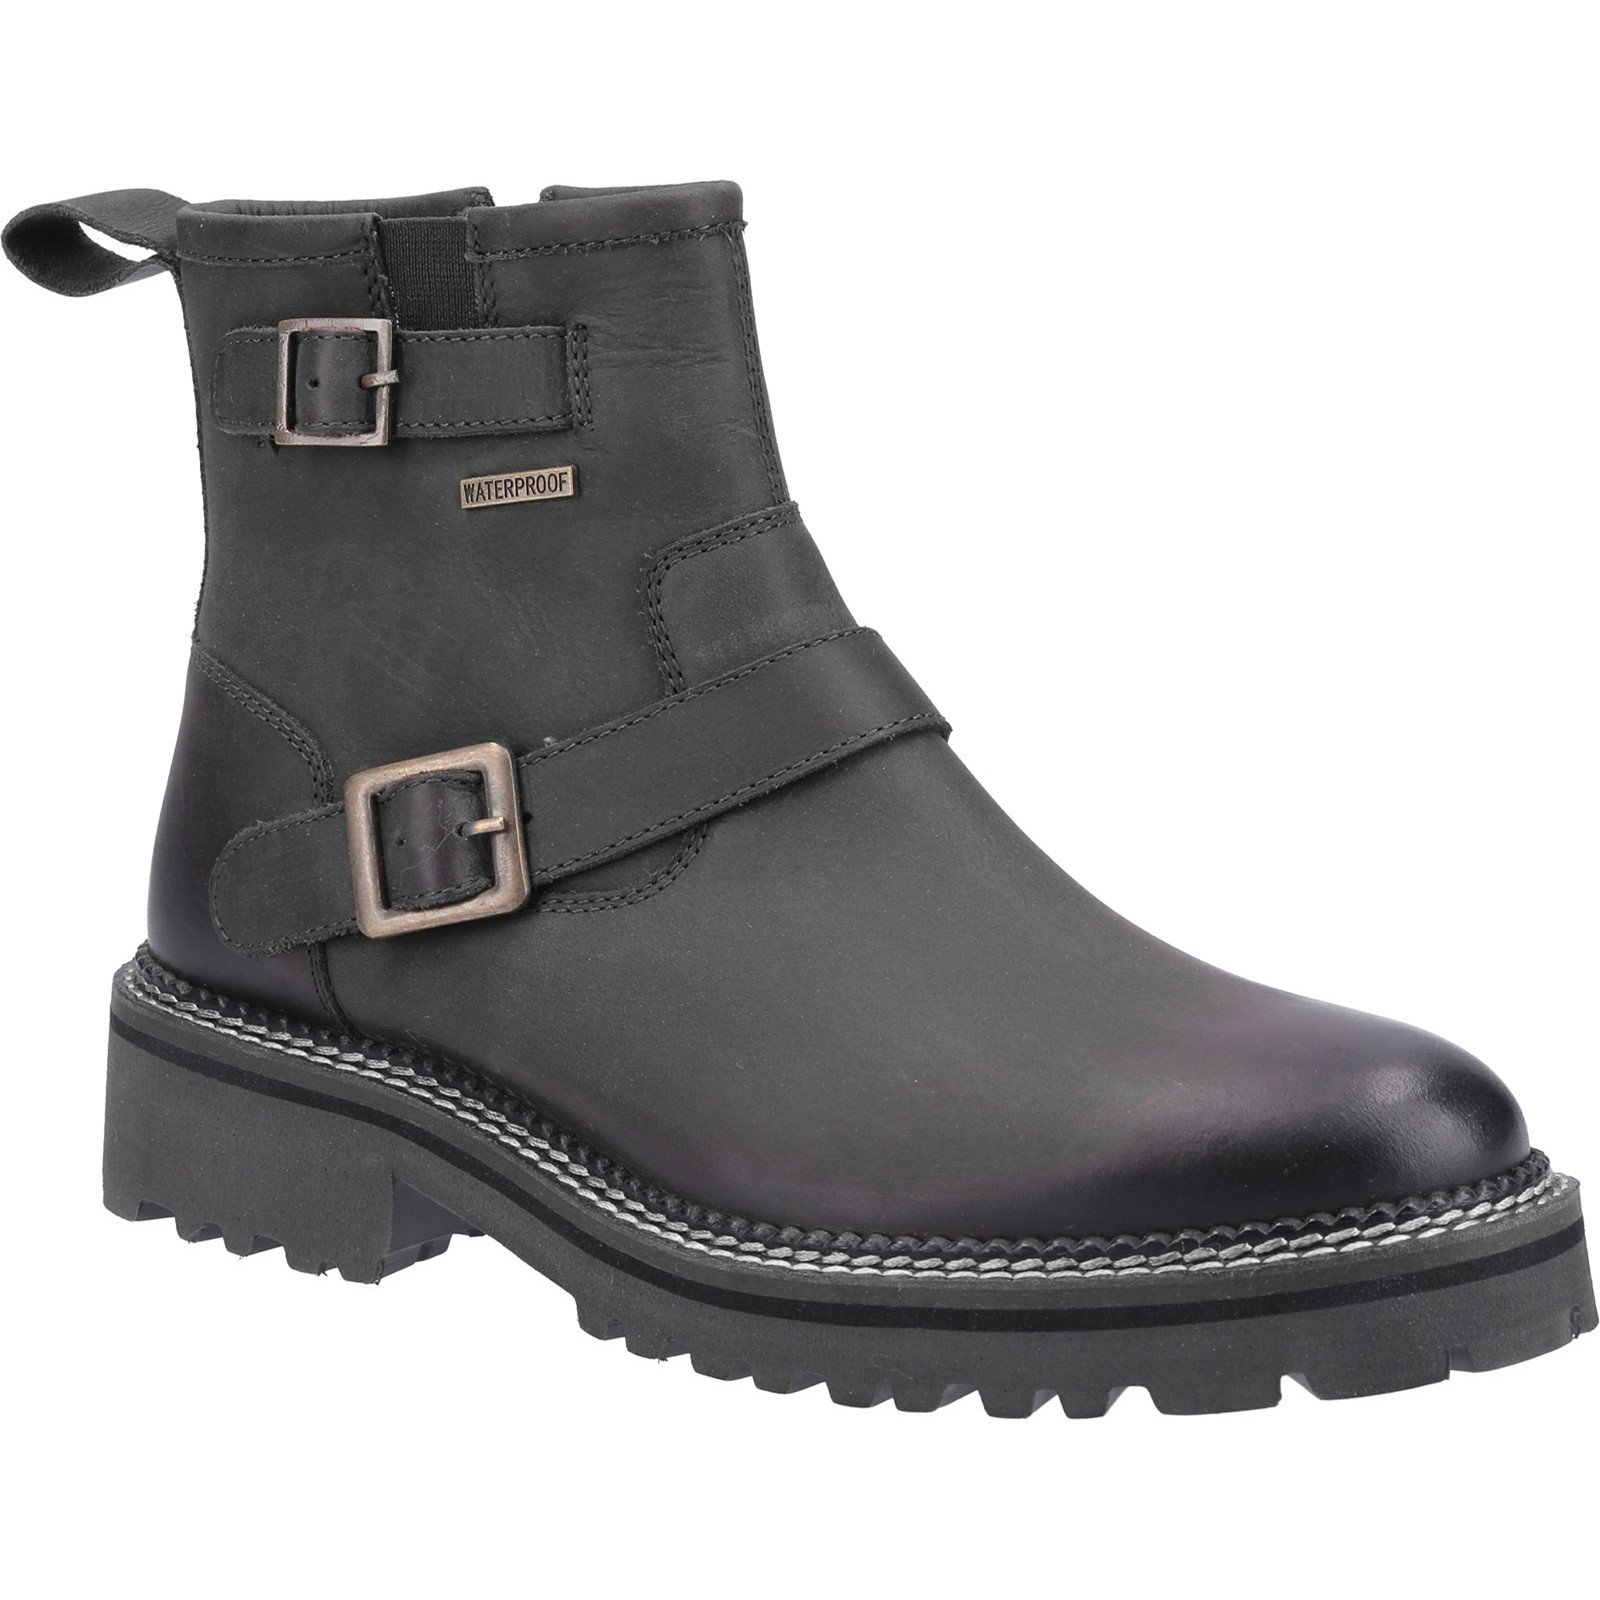 Cotswold Women's Combe Zip Ankle Boot Black 32975 - Black 8